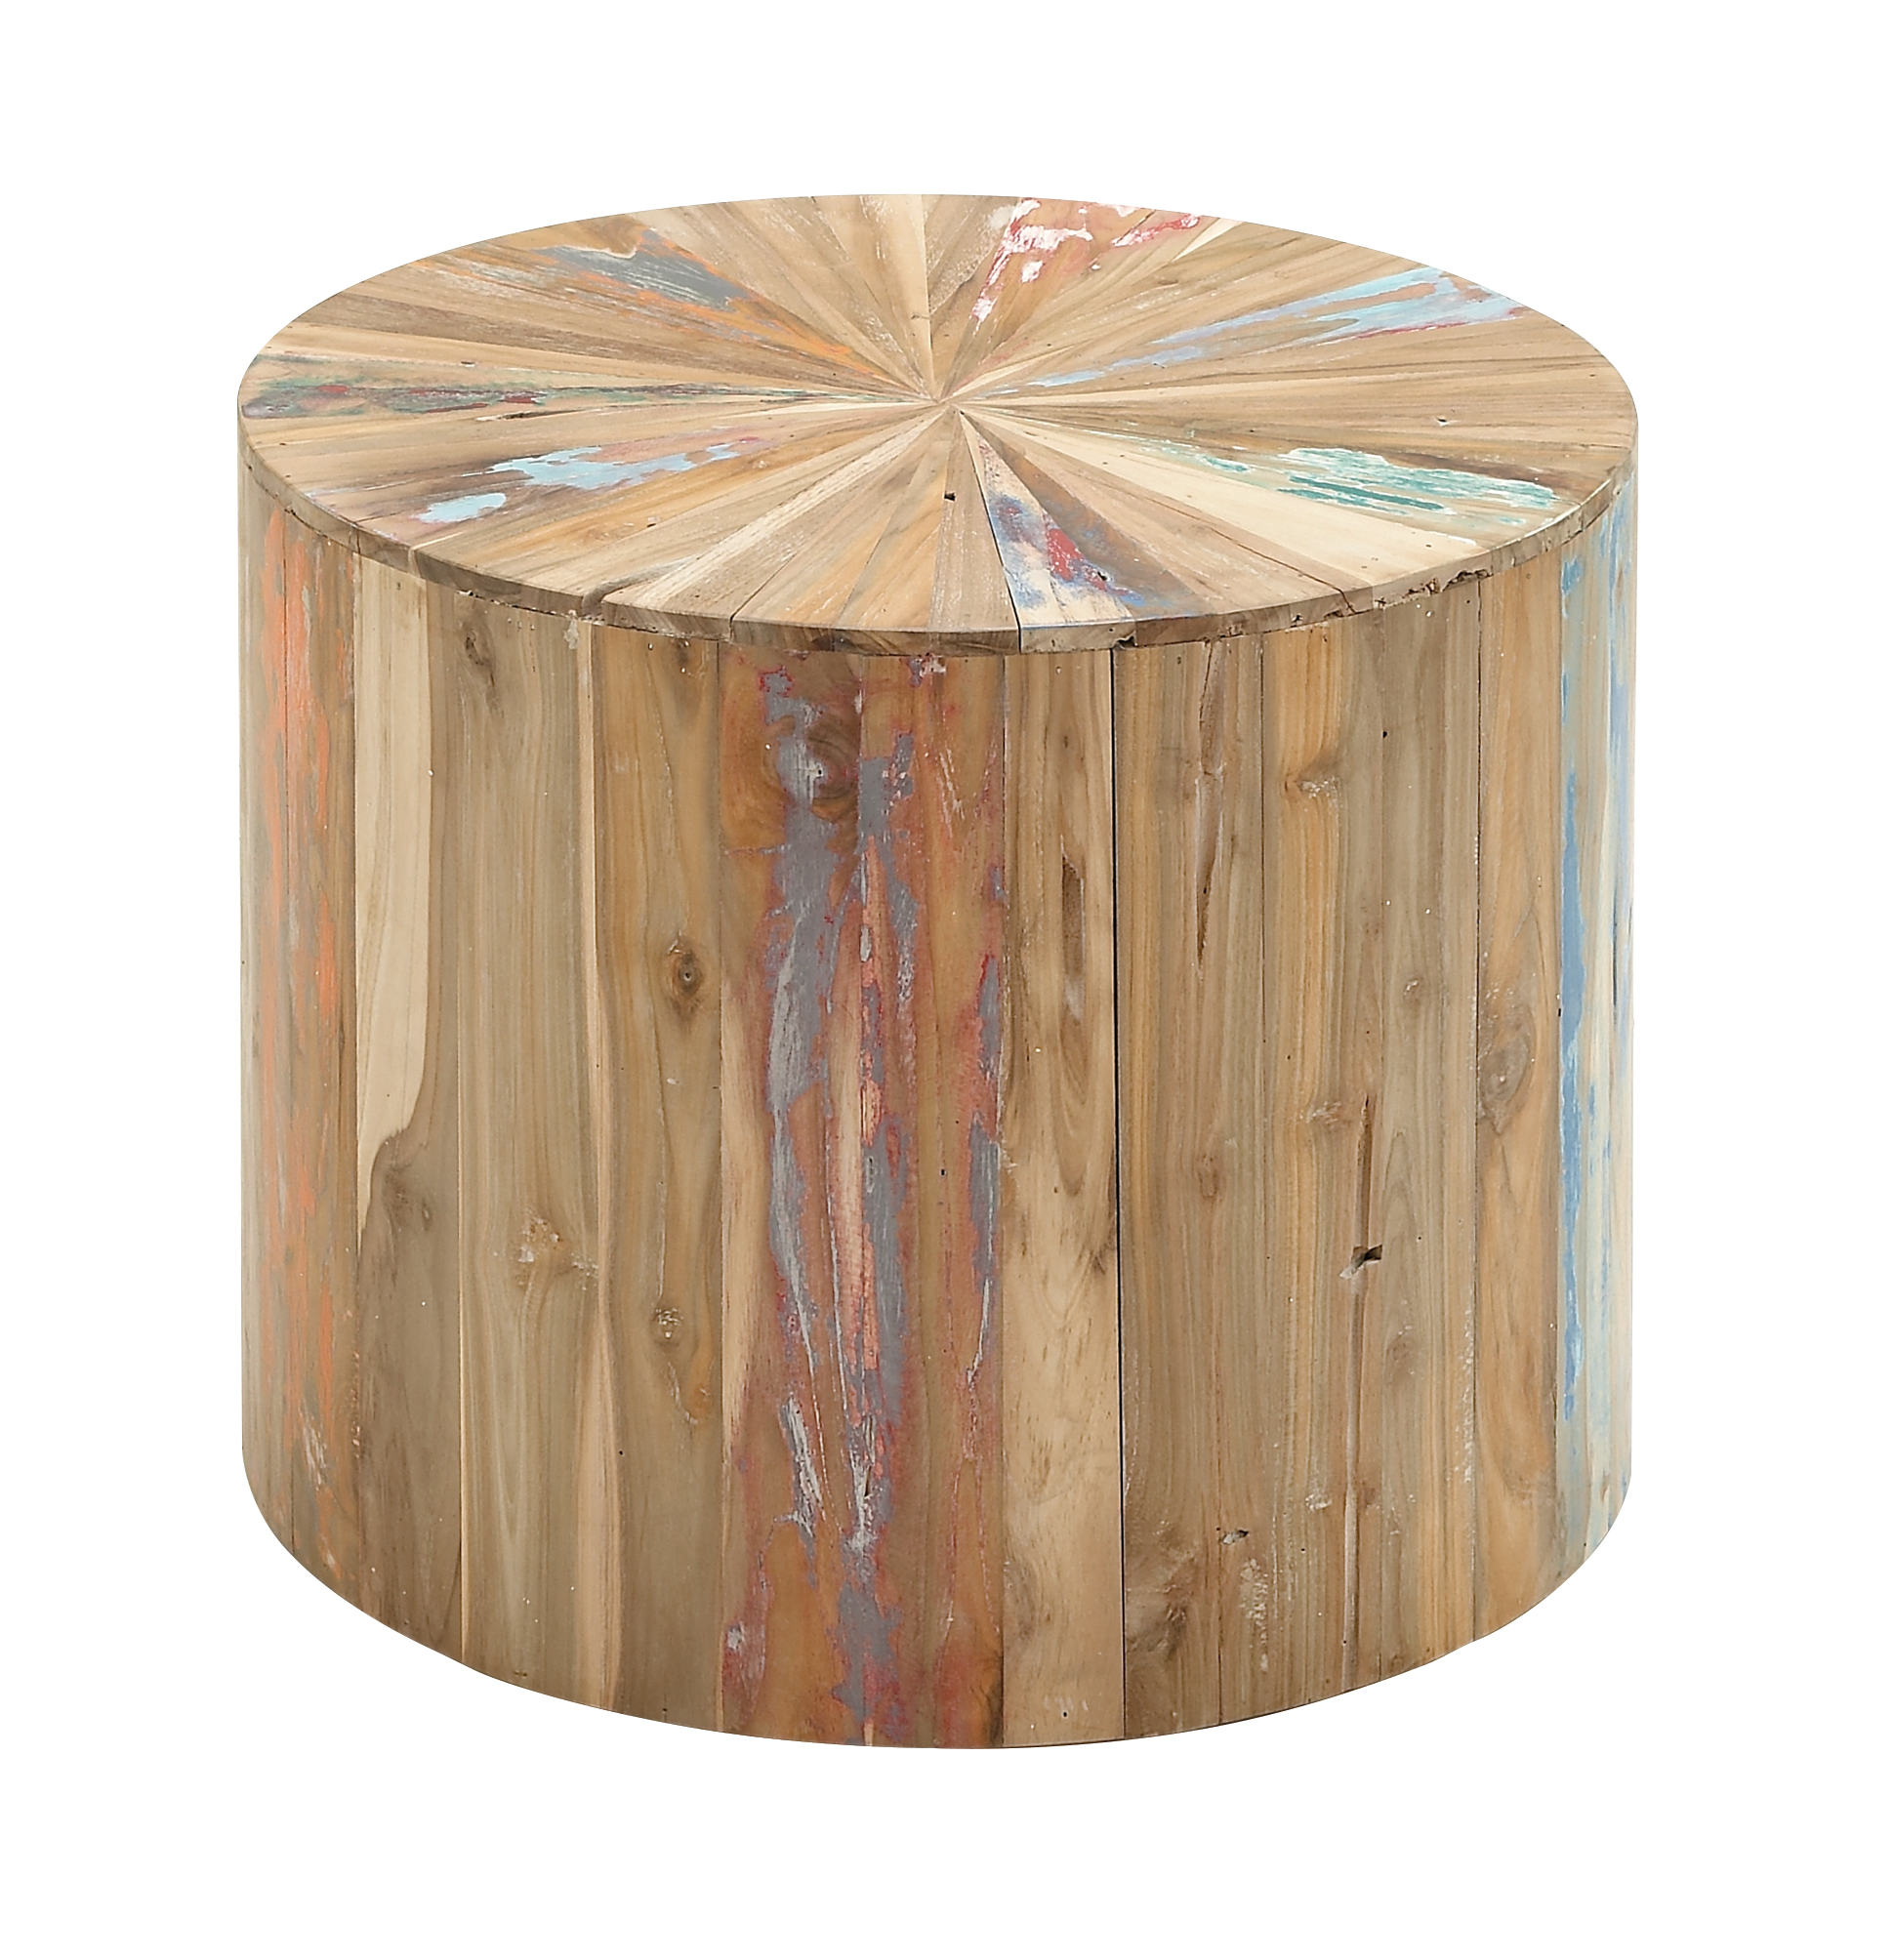 Decmode 18 X 22 Inch Rustic Reclaimed Wood Round Accent Table, Light Brown by DecMode